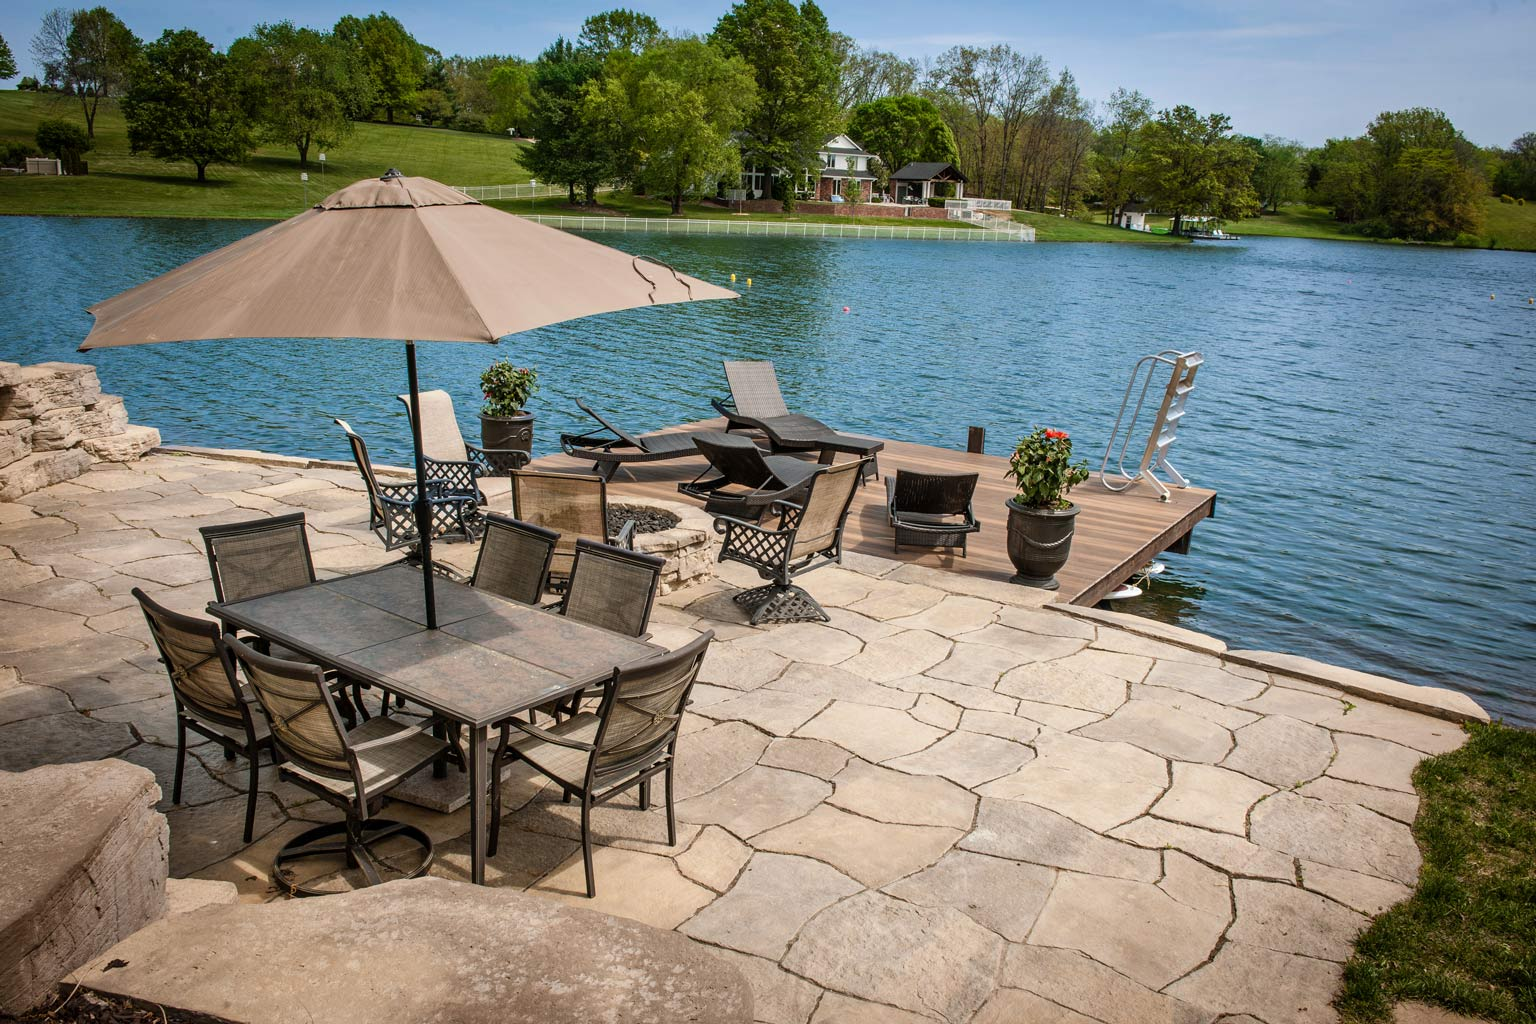 Grand Flagstone creates a beautiful natural patio